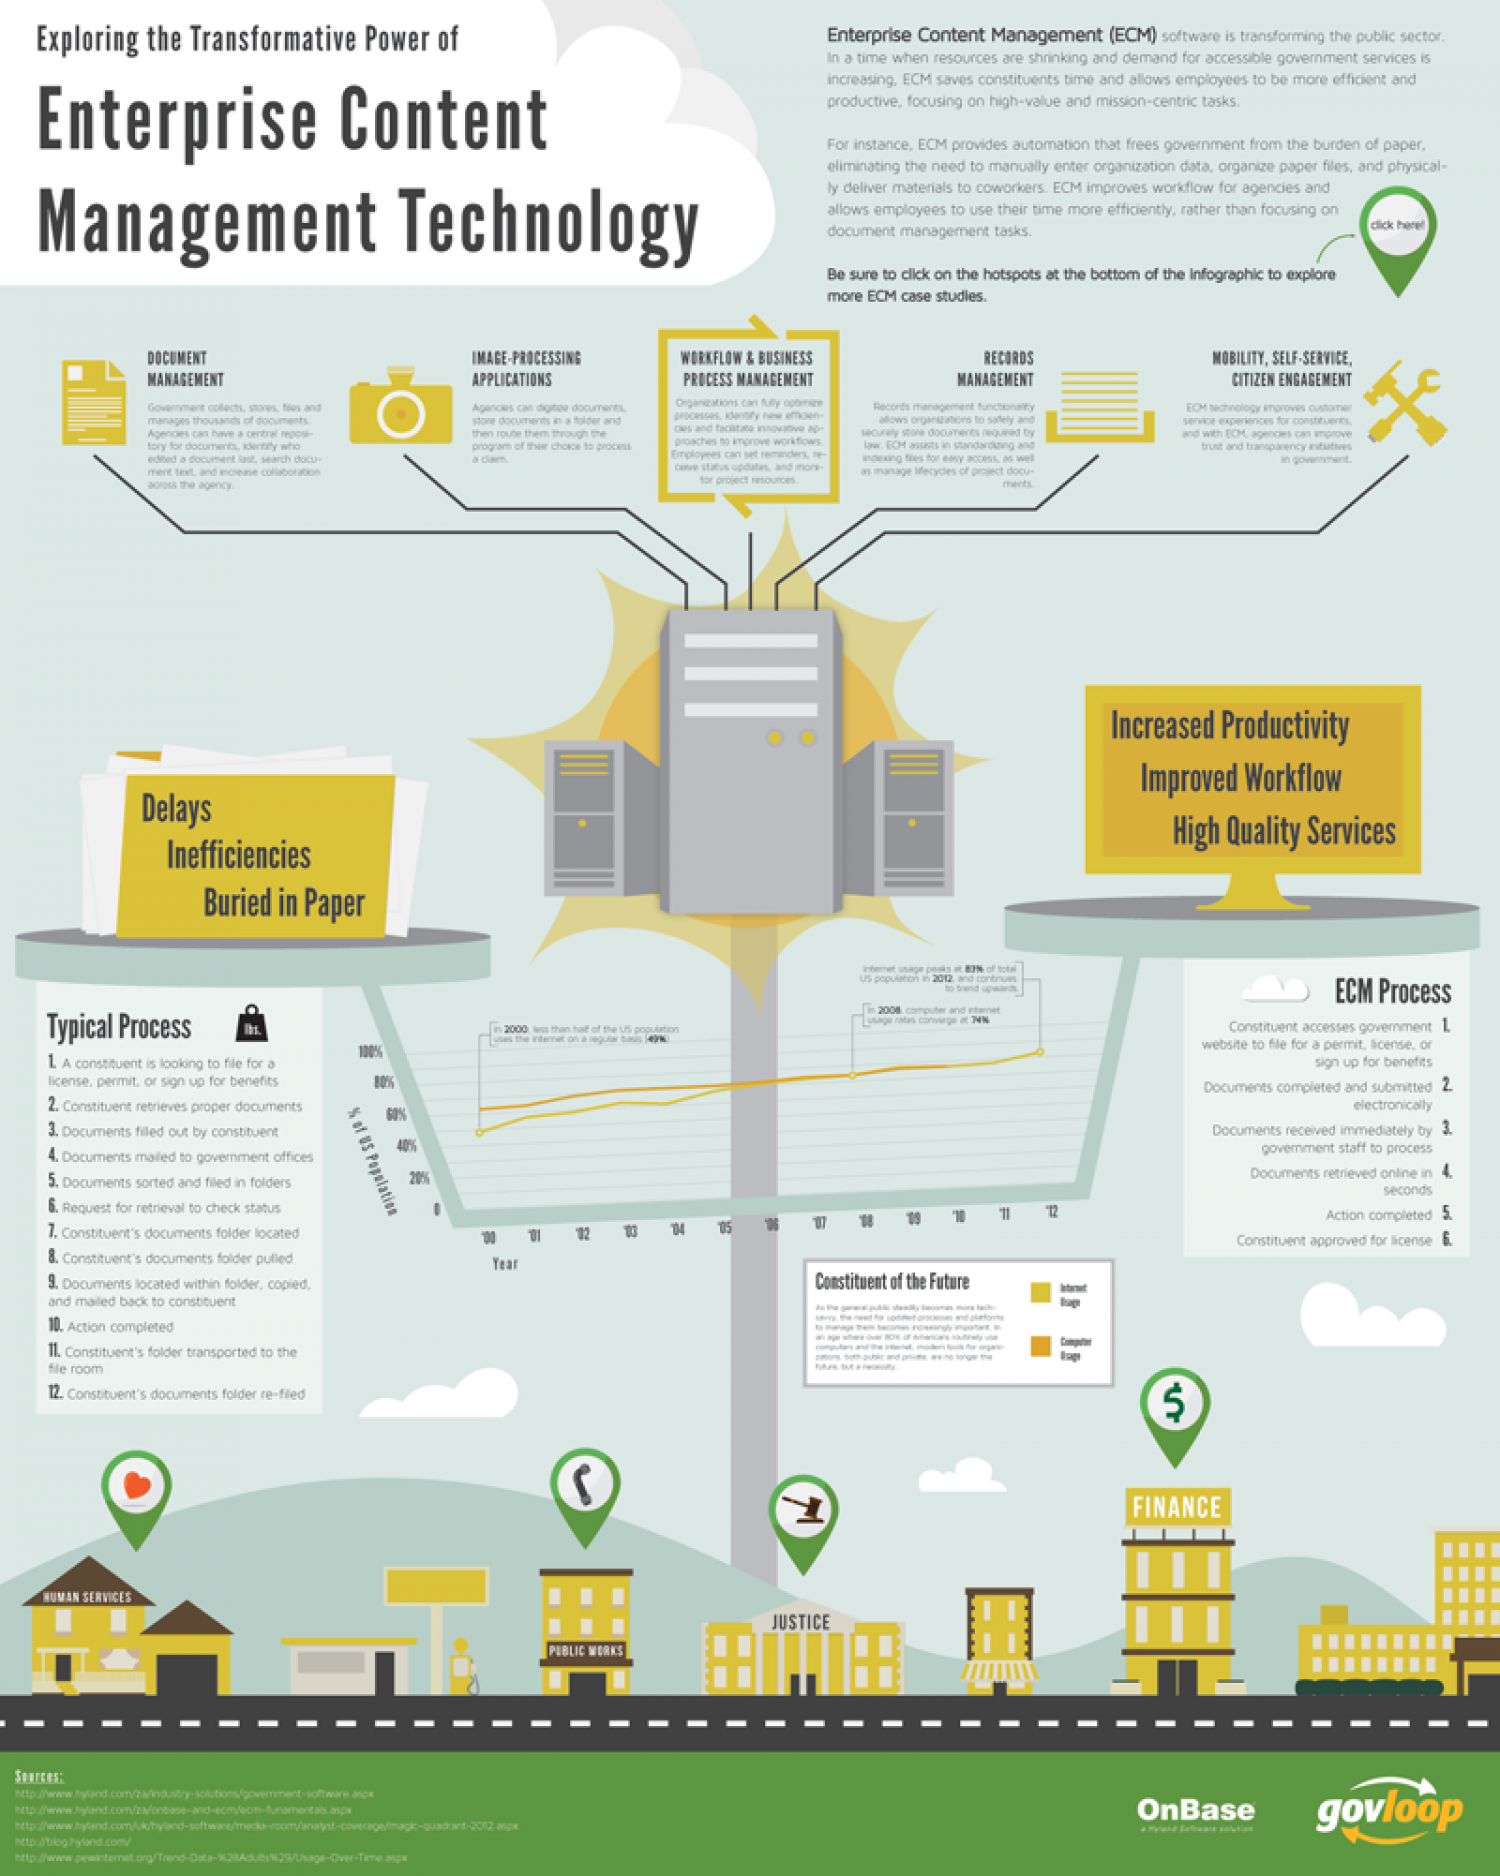 Infographic: How Enterprise Content Management Software is Transforming the Public Sector Infographic